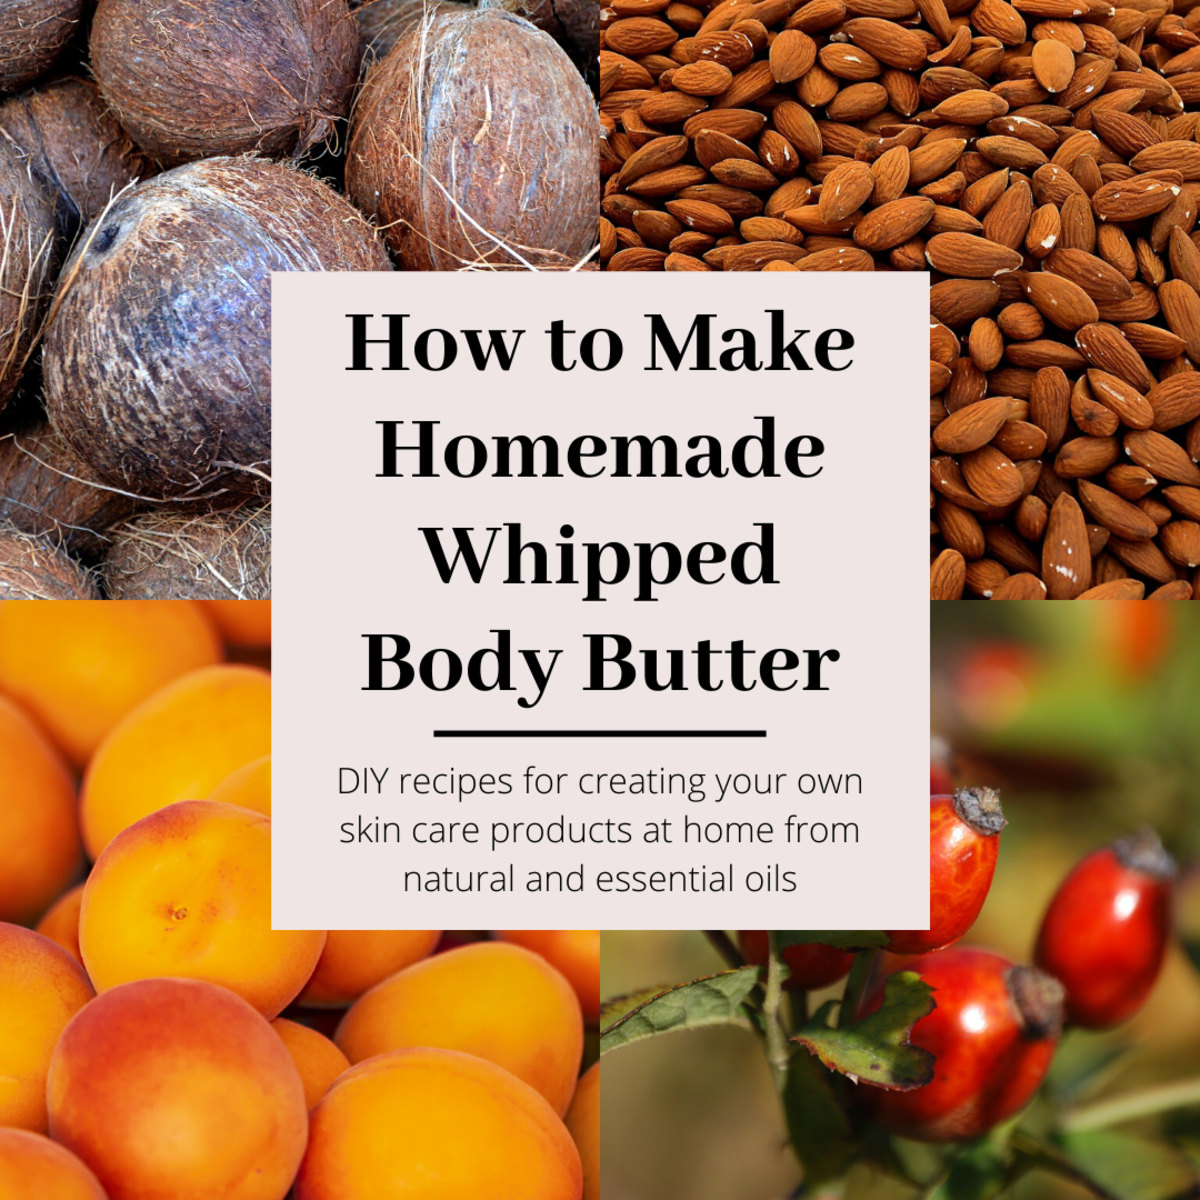 How to Make Homemade Whipped Body Butter Using Essential Oils